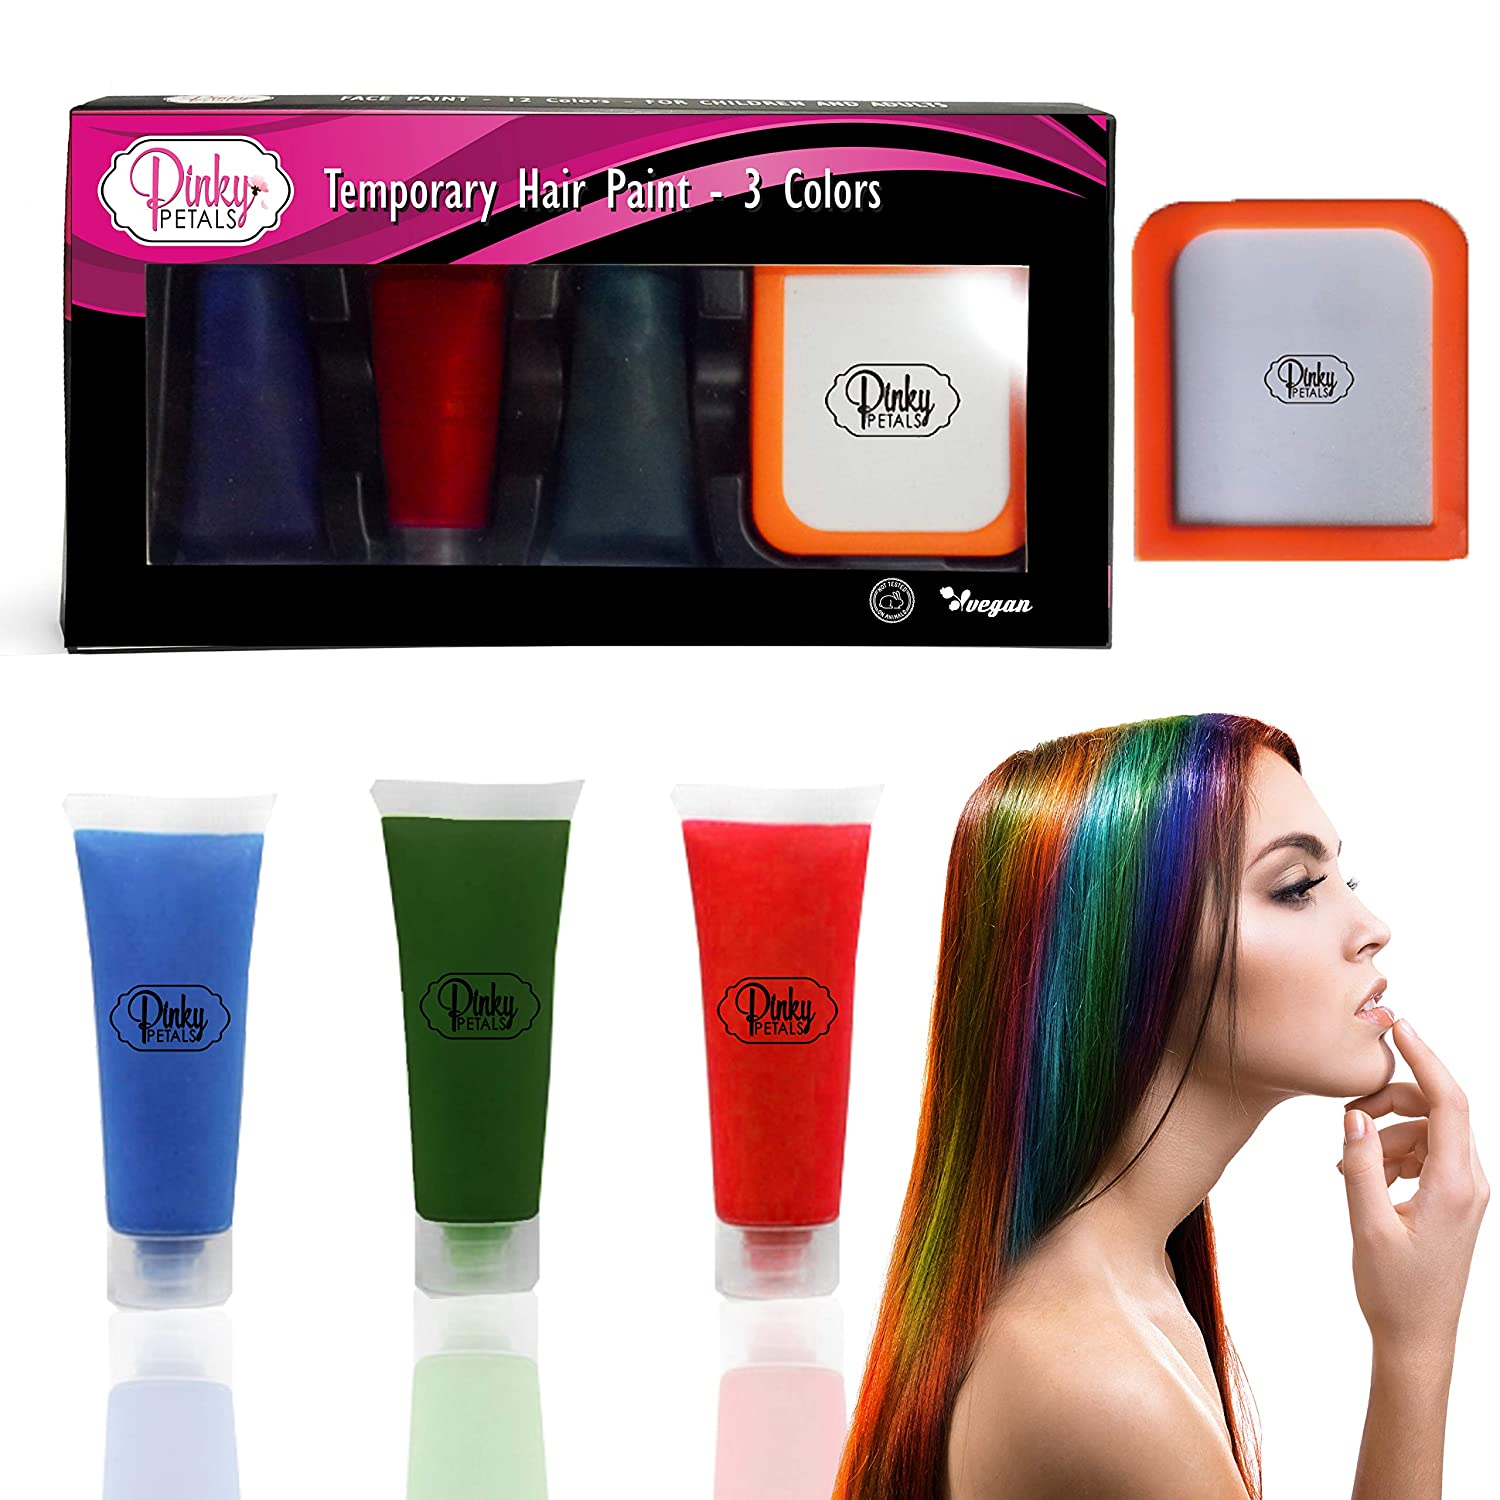 Hair Paint COUNT Vibrant, Long Lasting Temporary Hair Color Cream Pinky Petals (Blue/Green/Red)